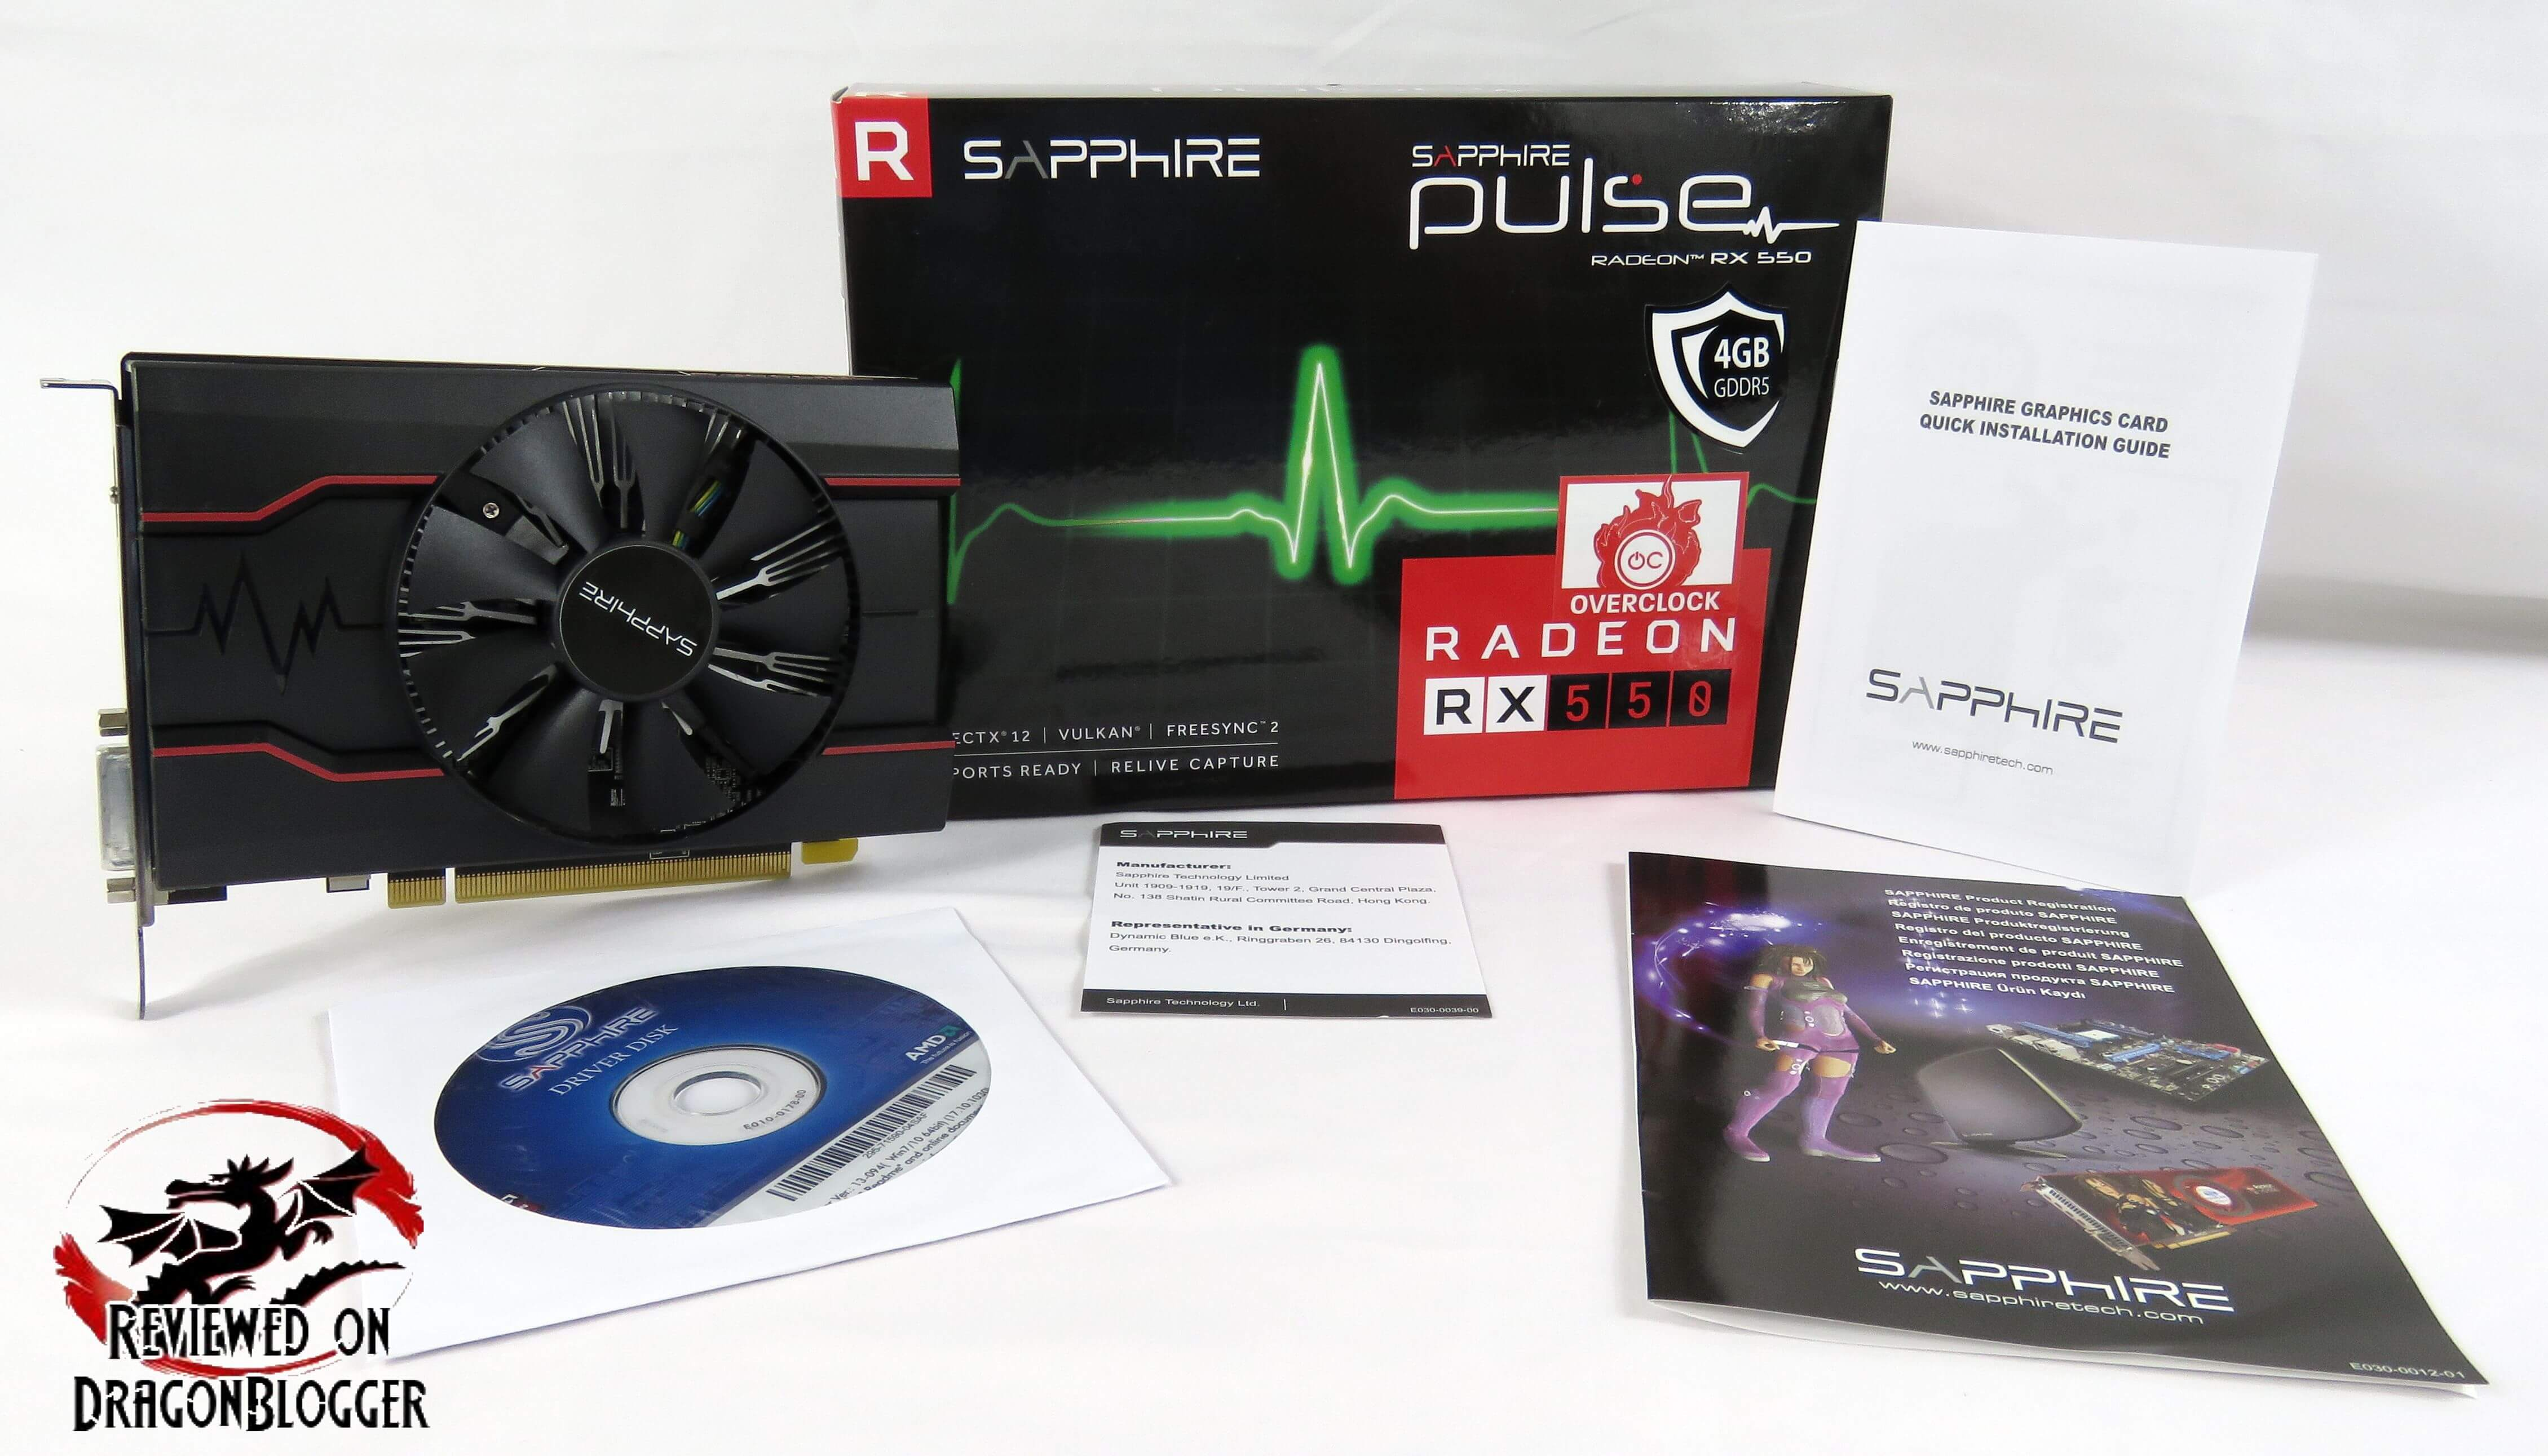 Sapphire Radeon PULSE RX550 4GB 11268-01-20G Video Card Review